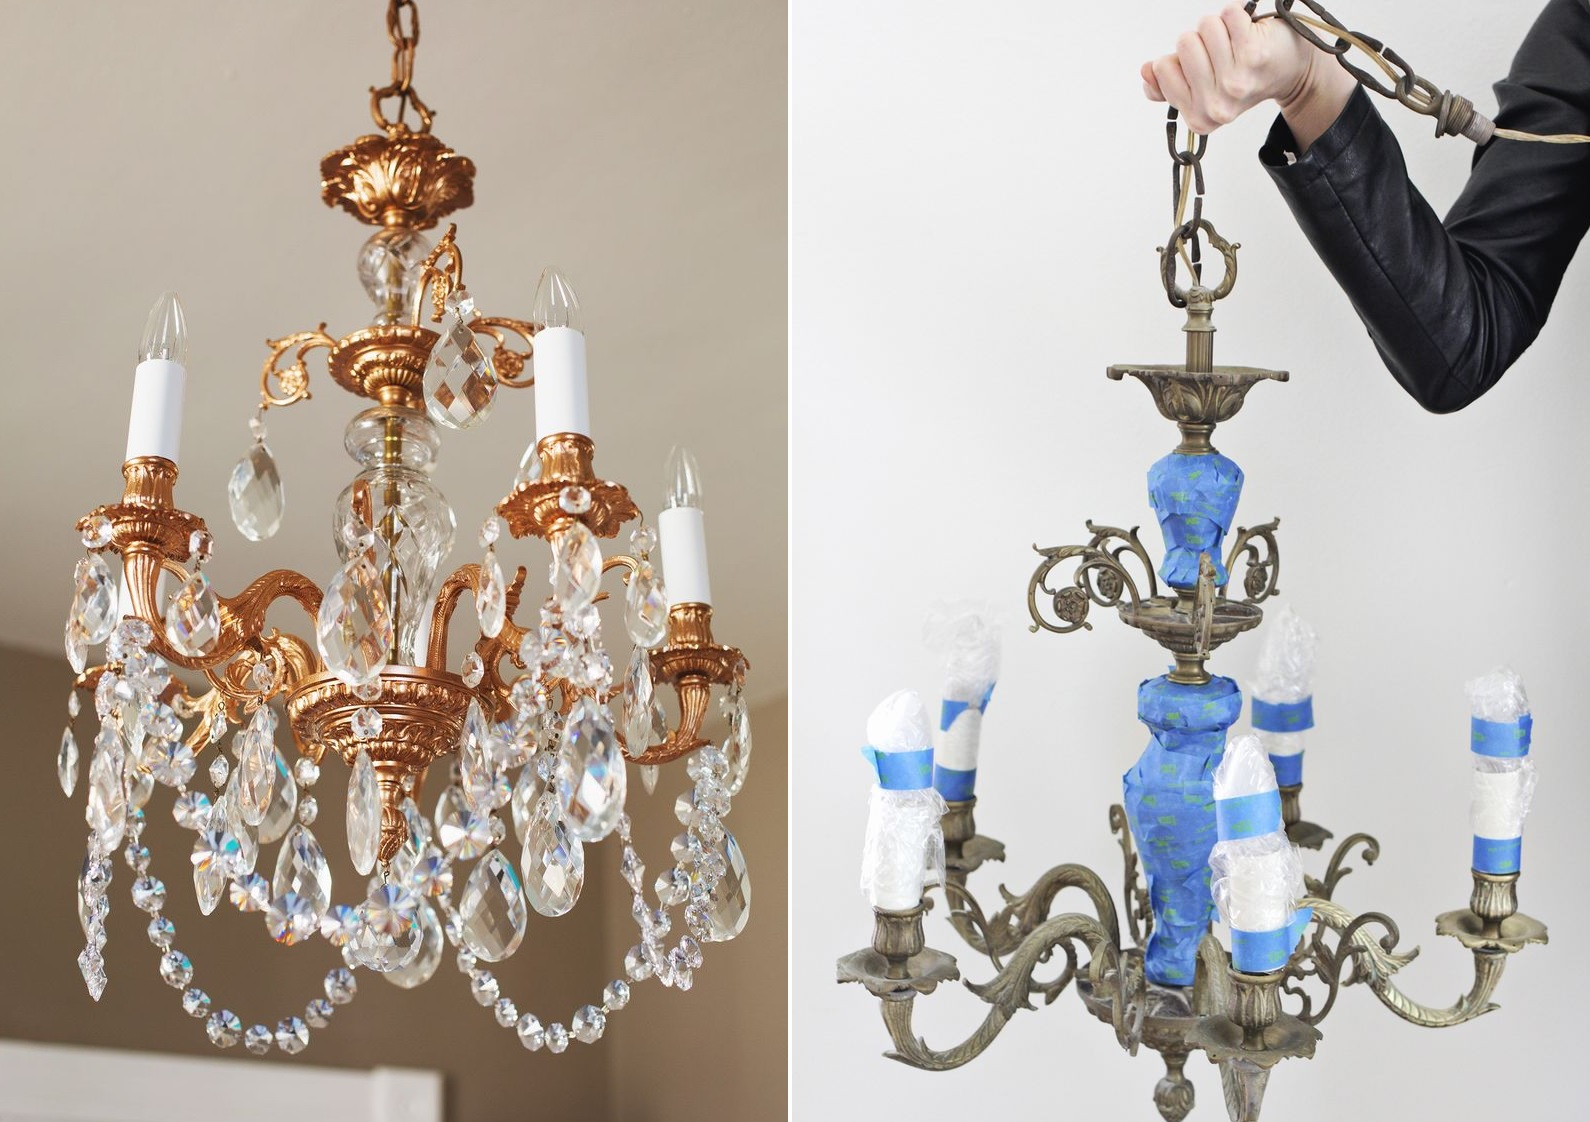 Having fun with copper spray paint 11 diy ideas copper spray paint chandelier aloadofball